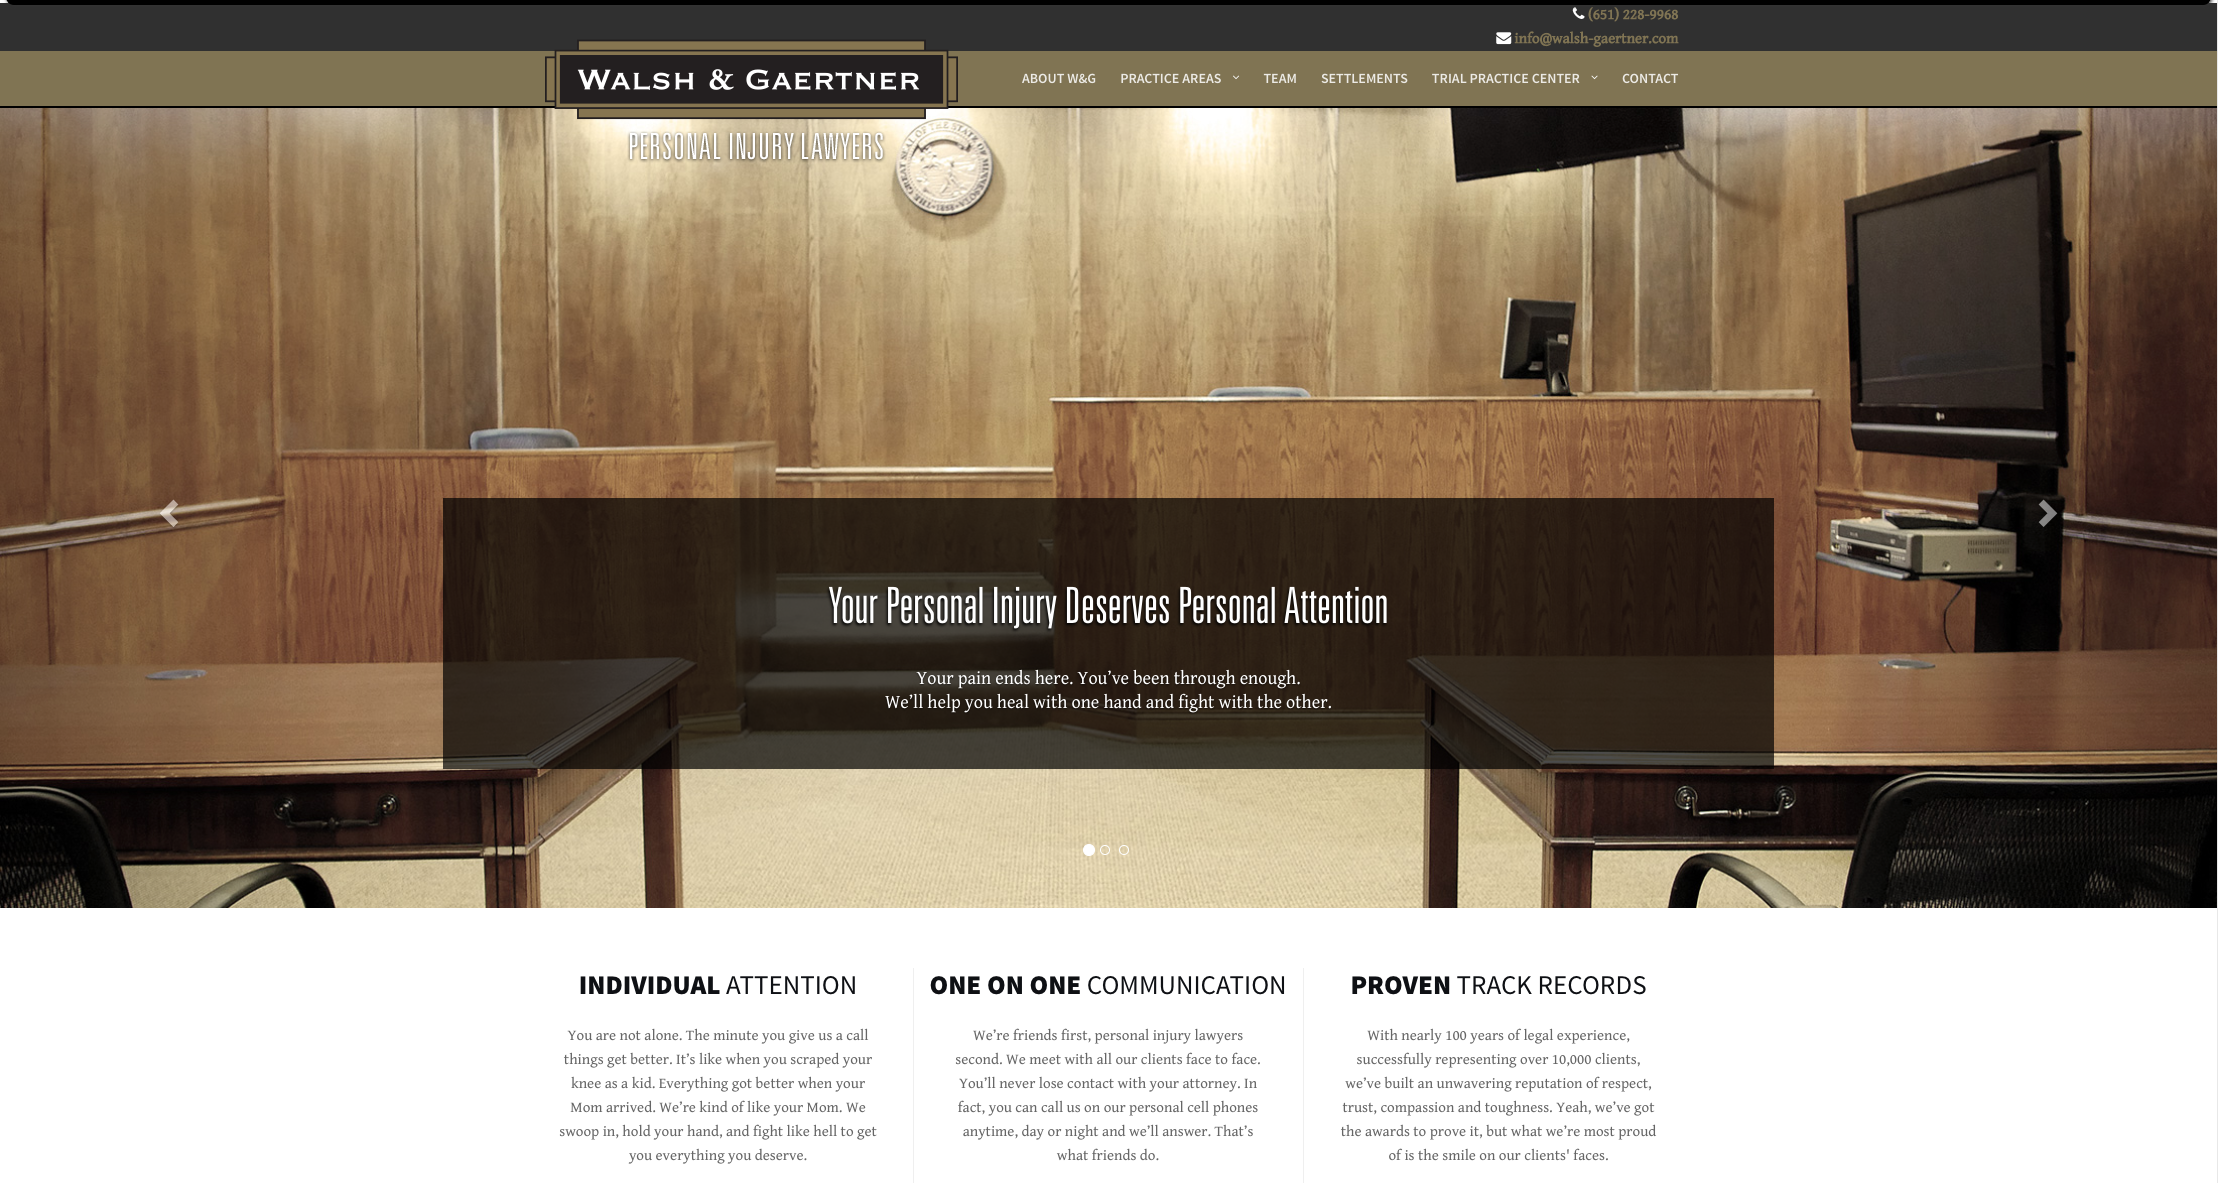 photo of the previously published Walsh and Gaertner website.